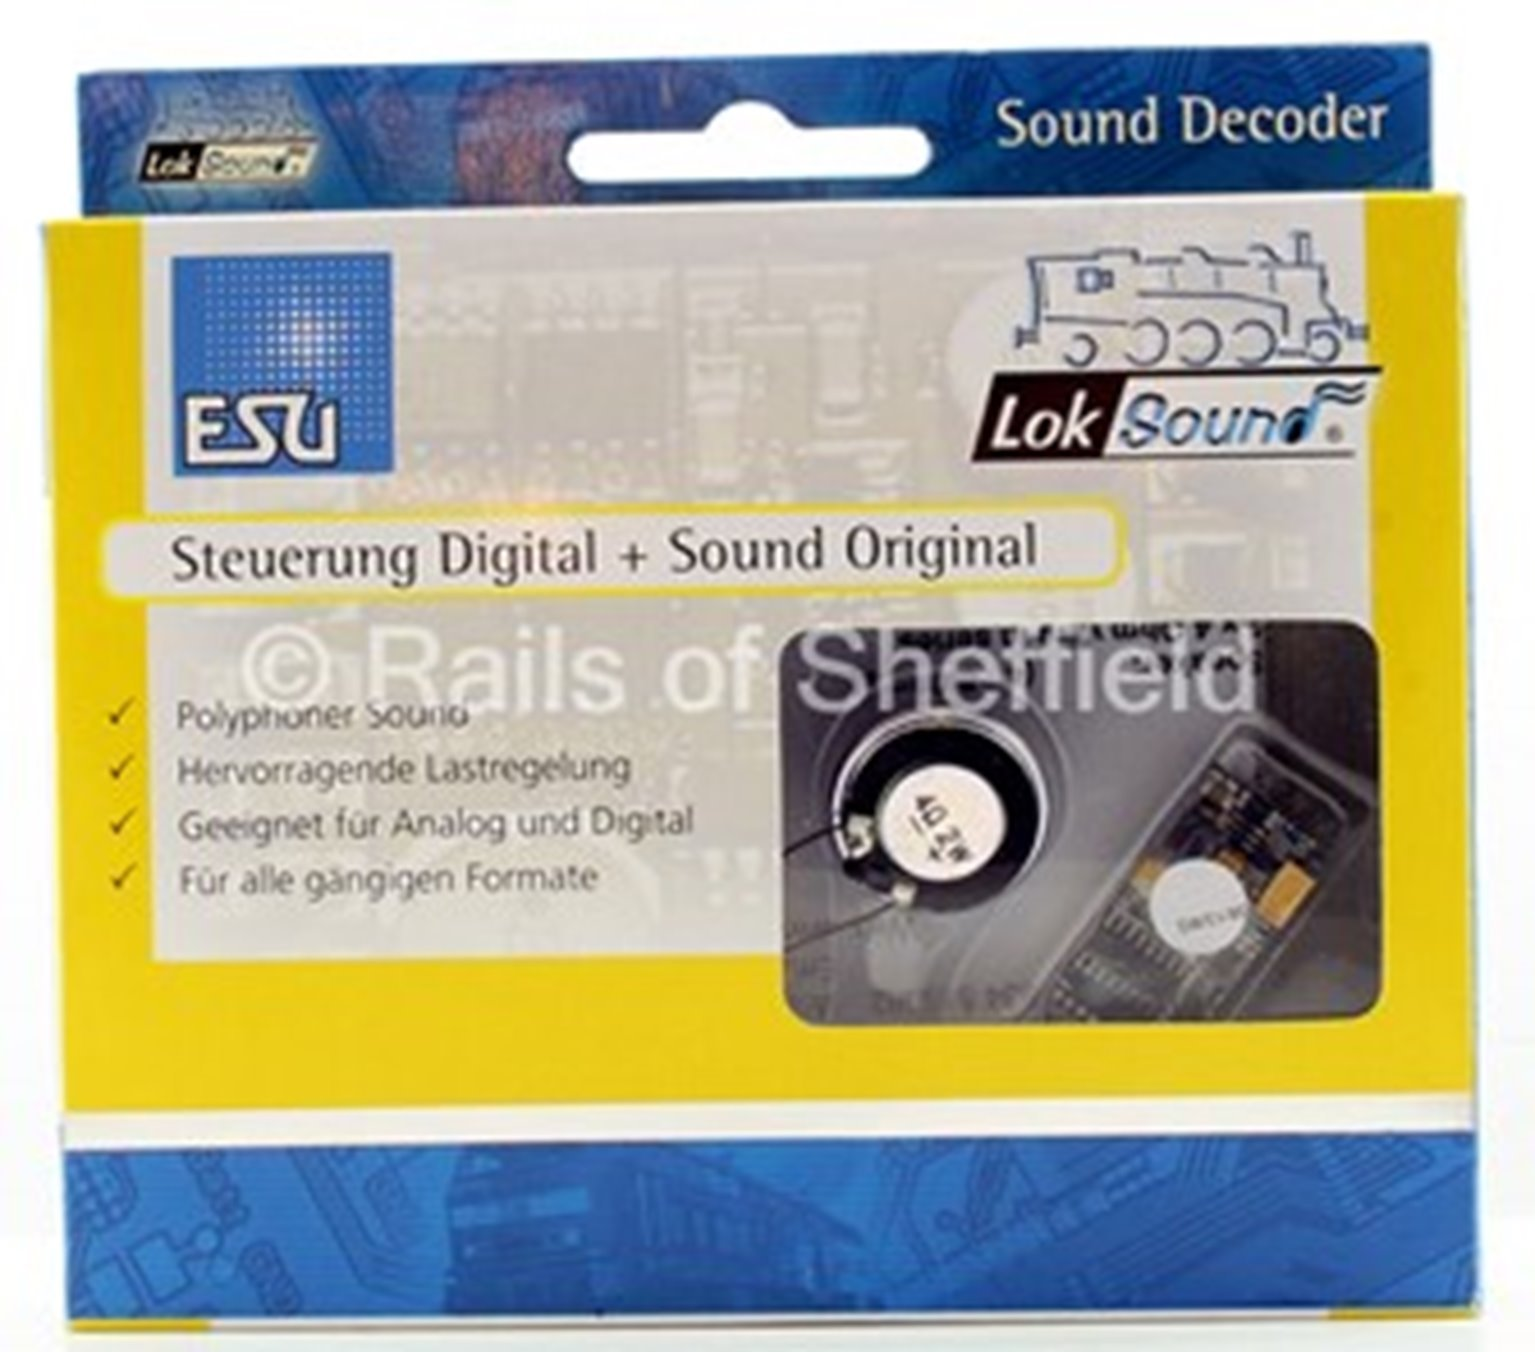 V4.0 Steam A4 Pacific Class Union of South Africa Digital Sound Decoder with Speaker - 21 pin